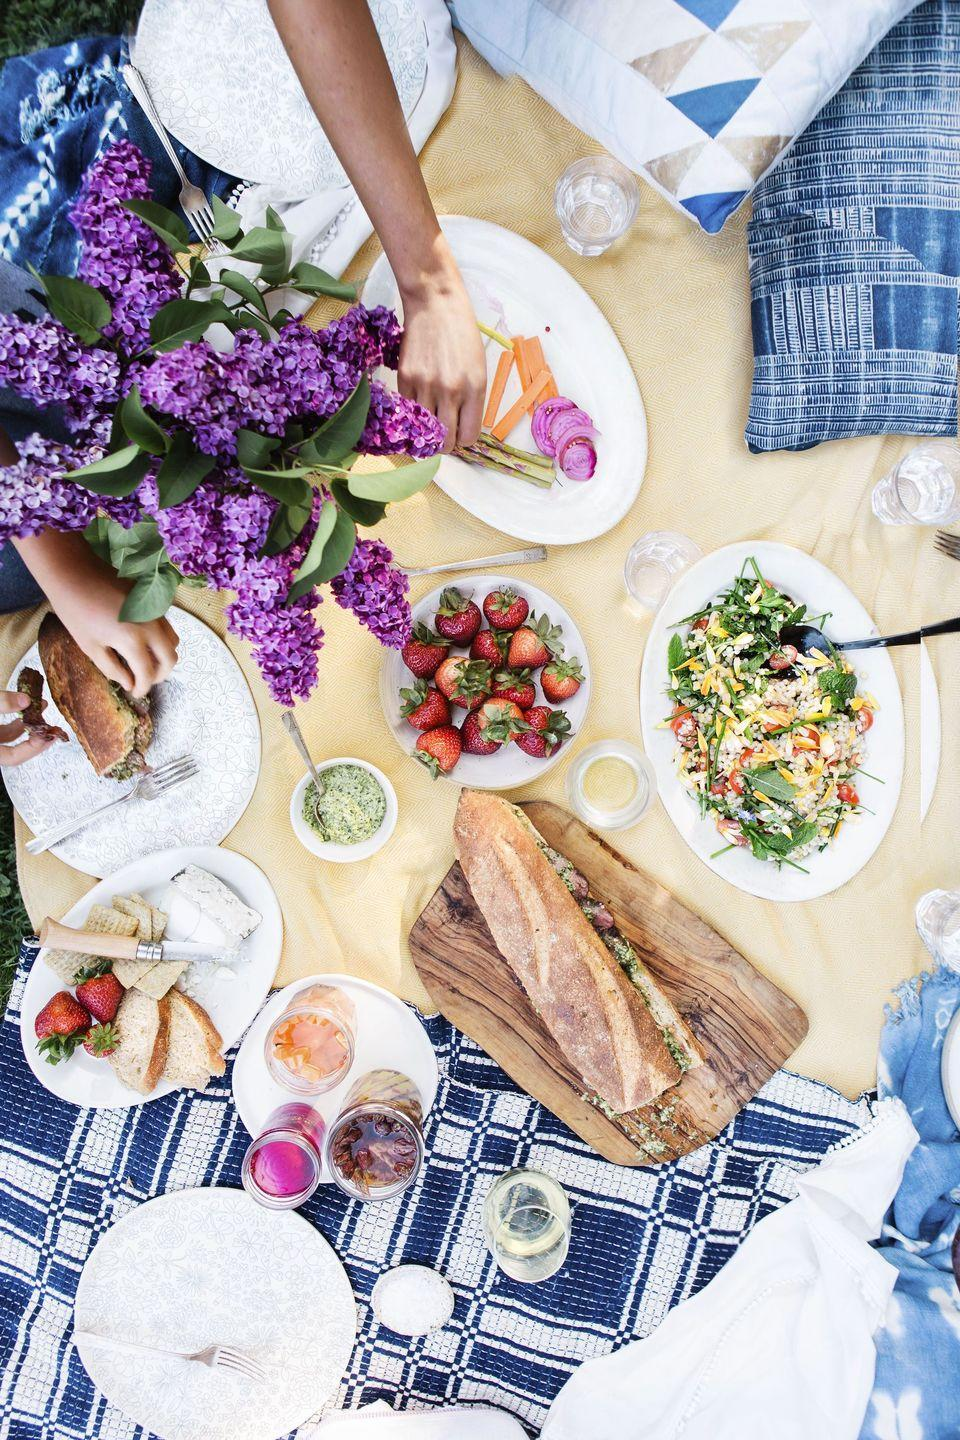 """<p>Showcase summer veggies with this flavorful salad. If something on the list isn't in season, swap it out for something else. </p><p><em><a href=""""http://www.womansday.com/food-recipes/a32884015/fresh-corn-tomato-herb-and-israeli-couscous-salad-recipe/"""" rel=""""nofollow noopener"""" target=""""_blank"""" data-ylk=""""slk:Get the Fresh Corn, Tomato, Herb & Israeli Couscous Salad recipe."""" class=""""link rapid-noclick-resp"""">Get the Fresh Corn, Tomato, Herb & Israeli Couscous Salad recipe. </a></em></p>"""